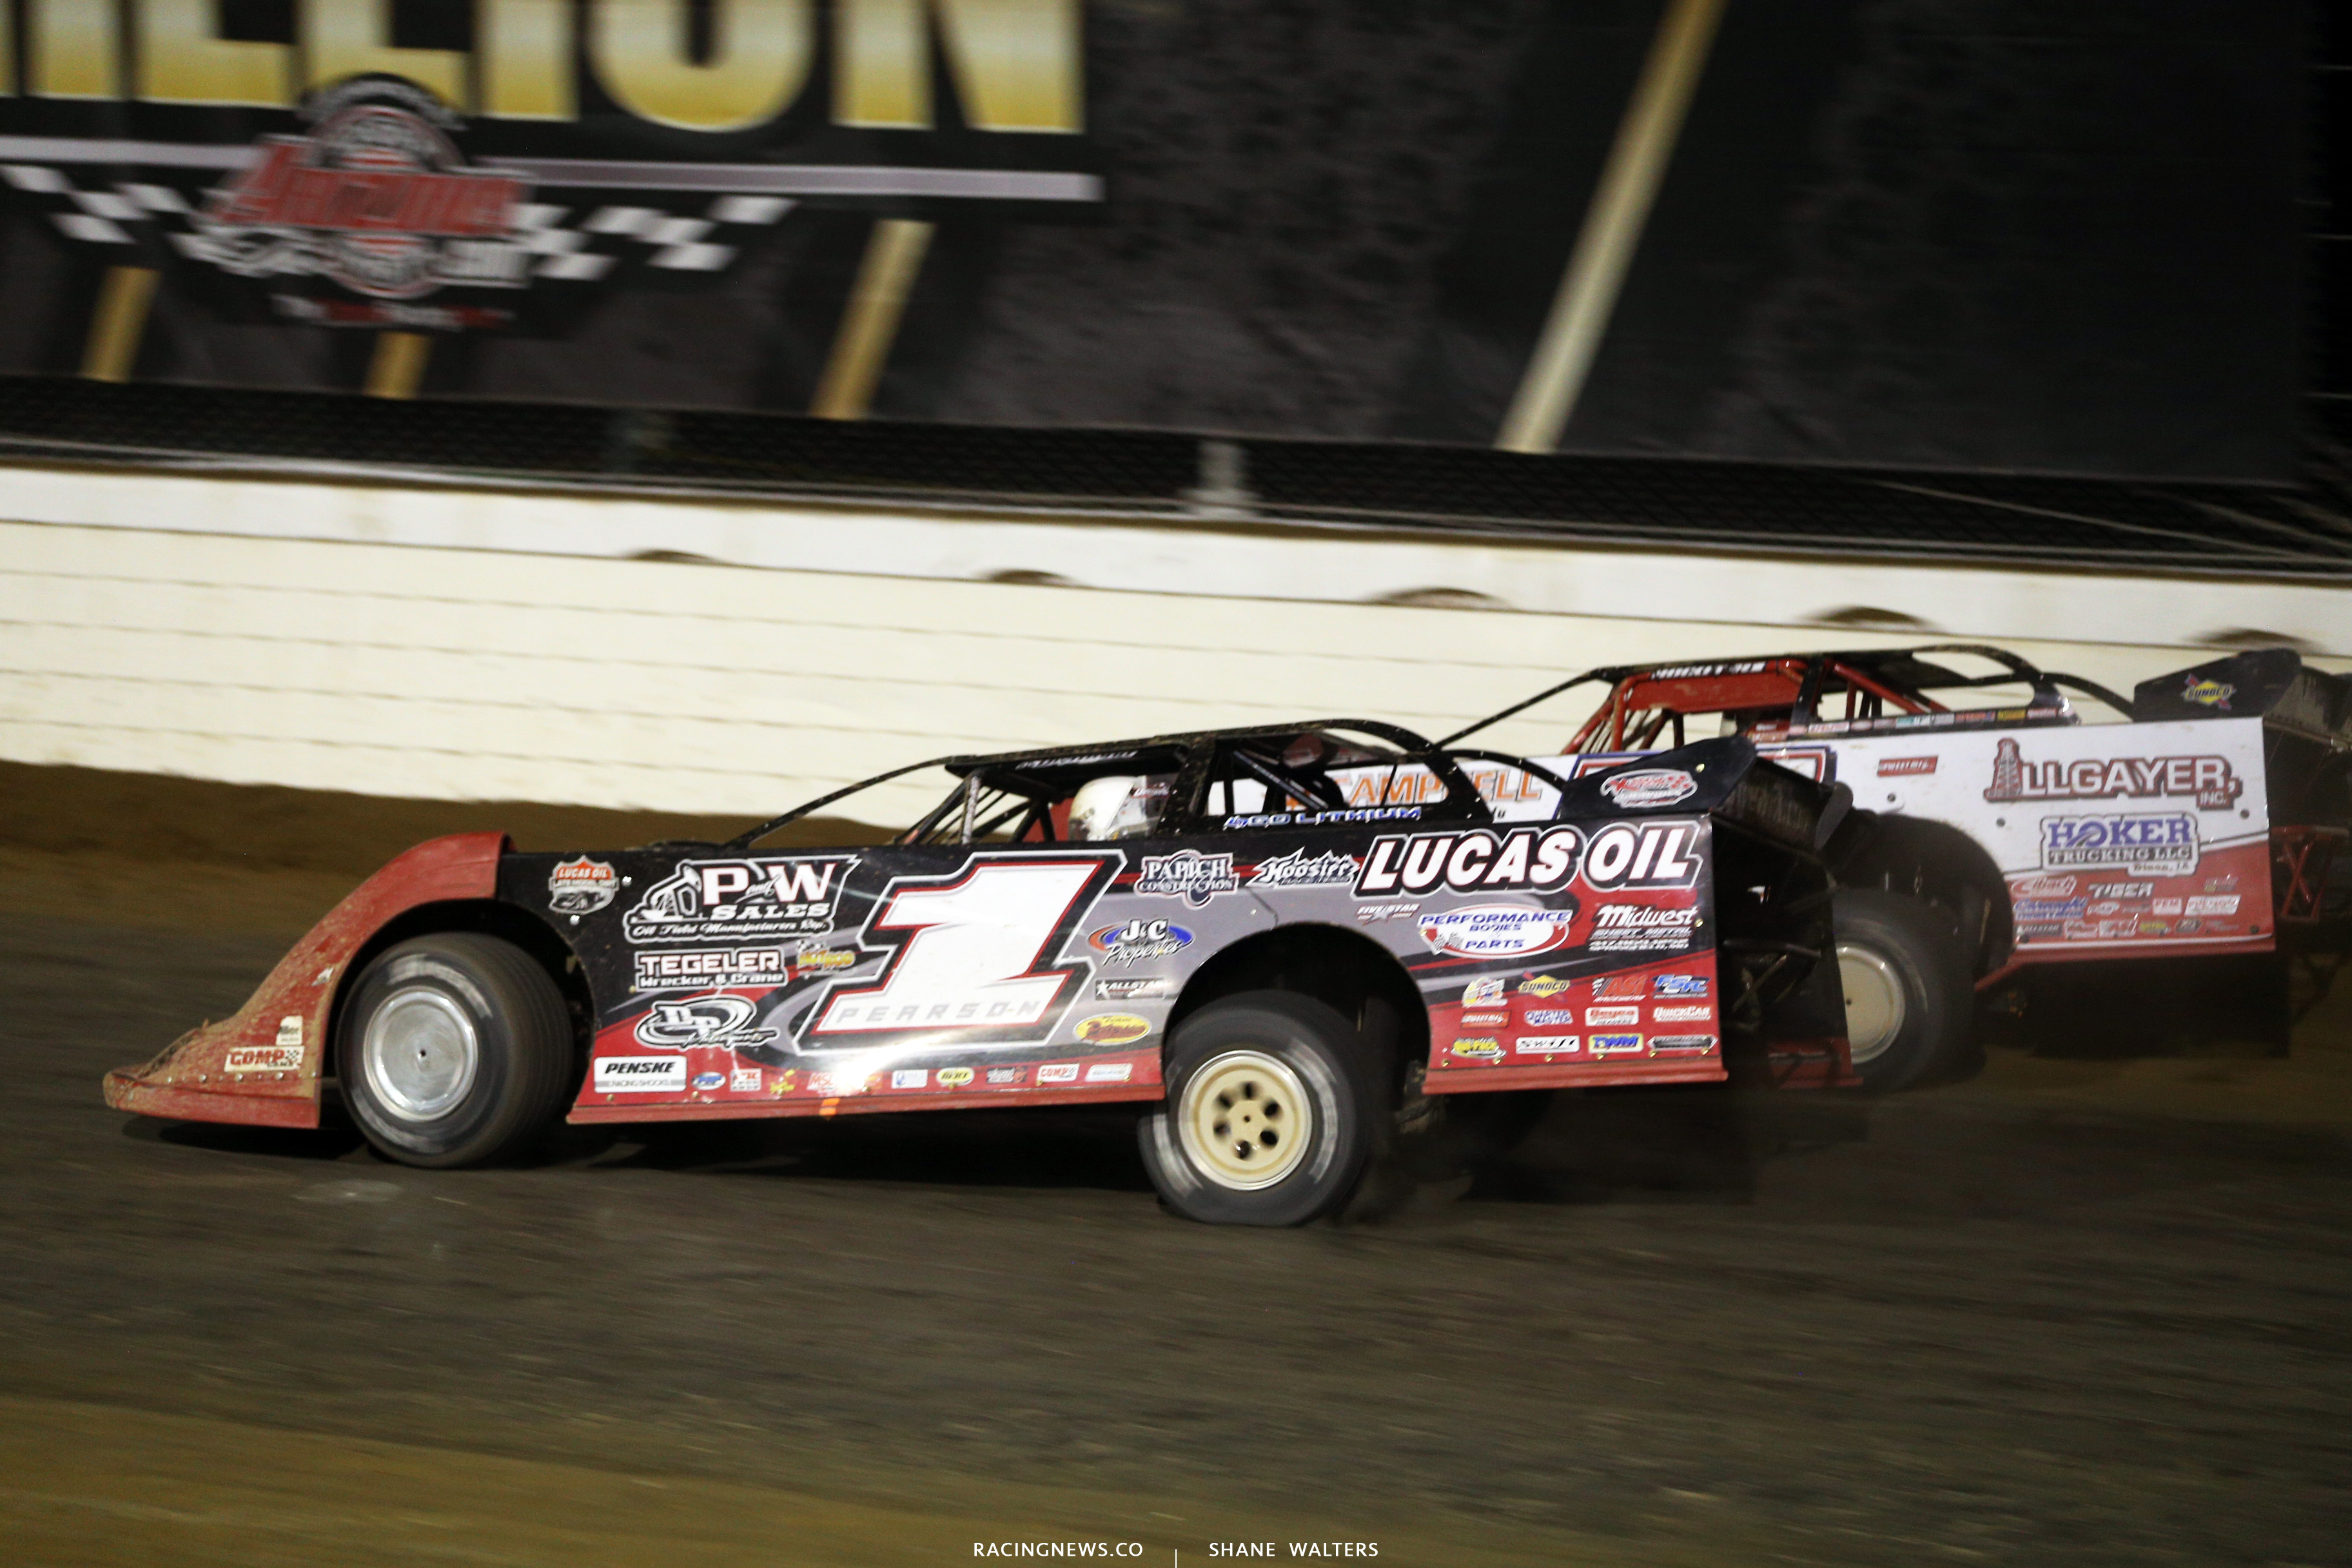 Earl Pearson Jr and Bobby Pierce in the Dirt Million at Mansfield Motor Speedway